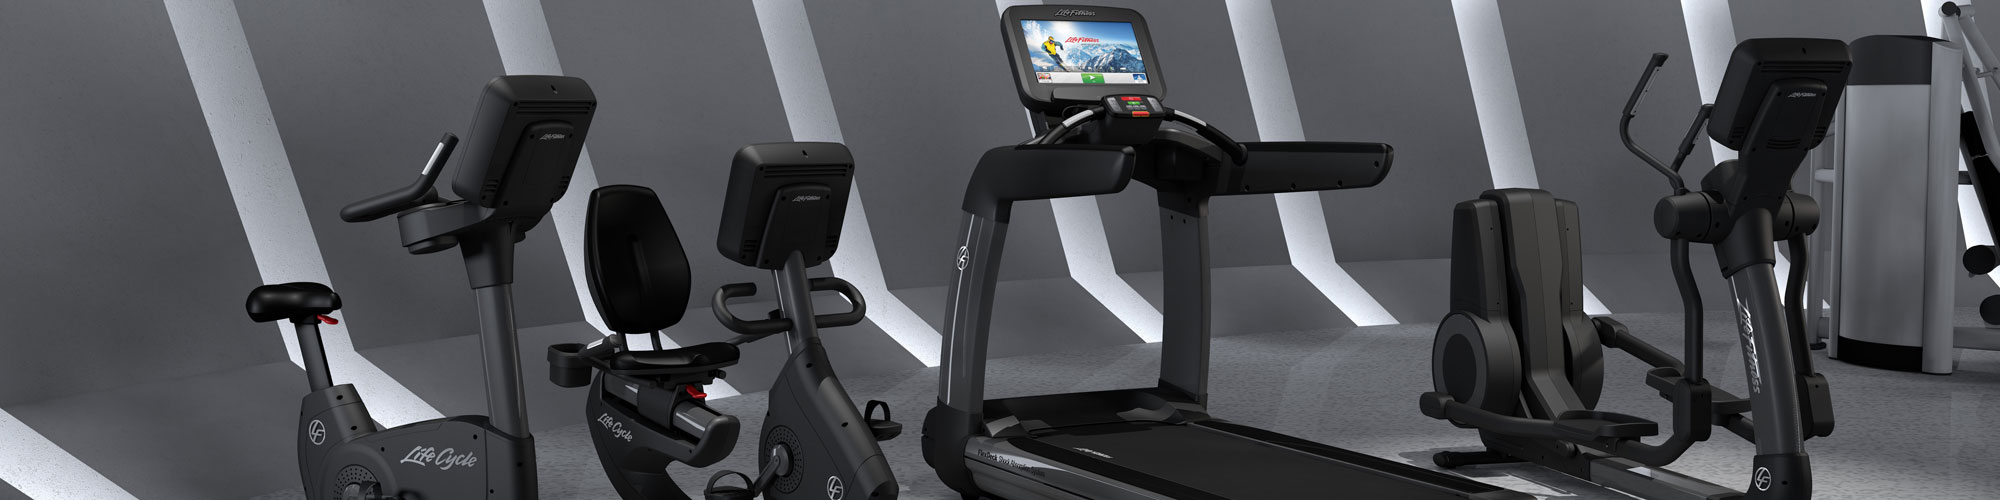 Commercial grade exercise bike, treadmill and cross trainer